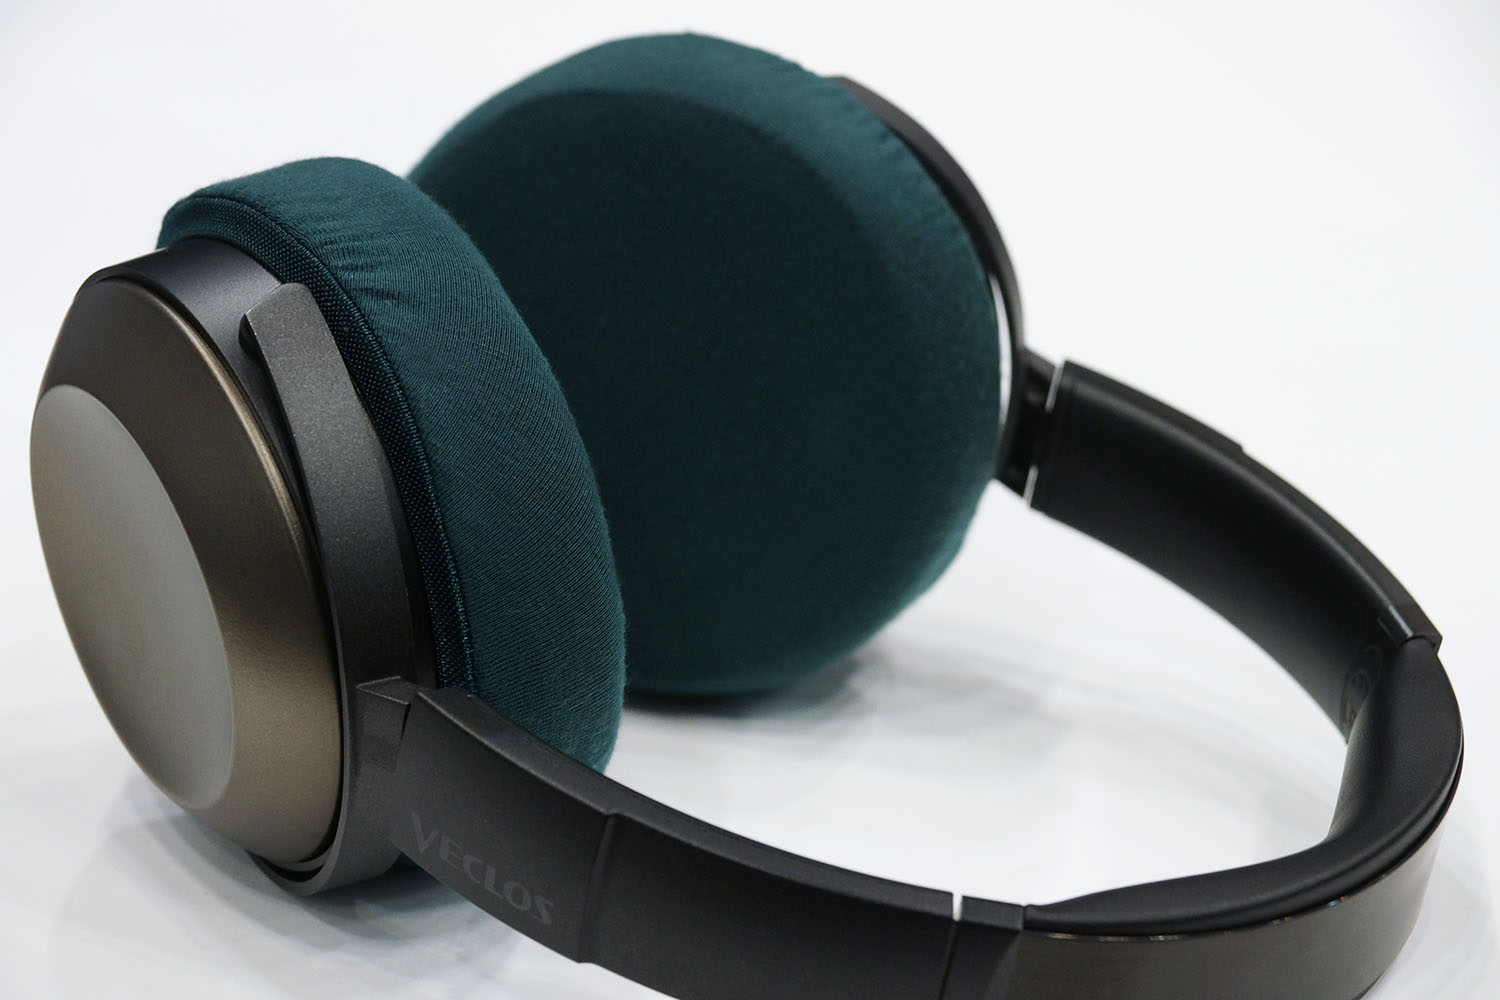 VECLOS HPT-700 ear pads compatible with mimimamo